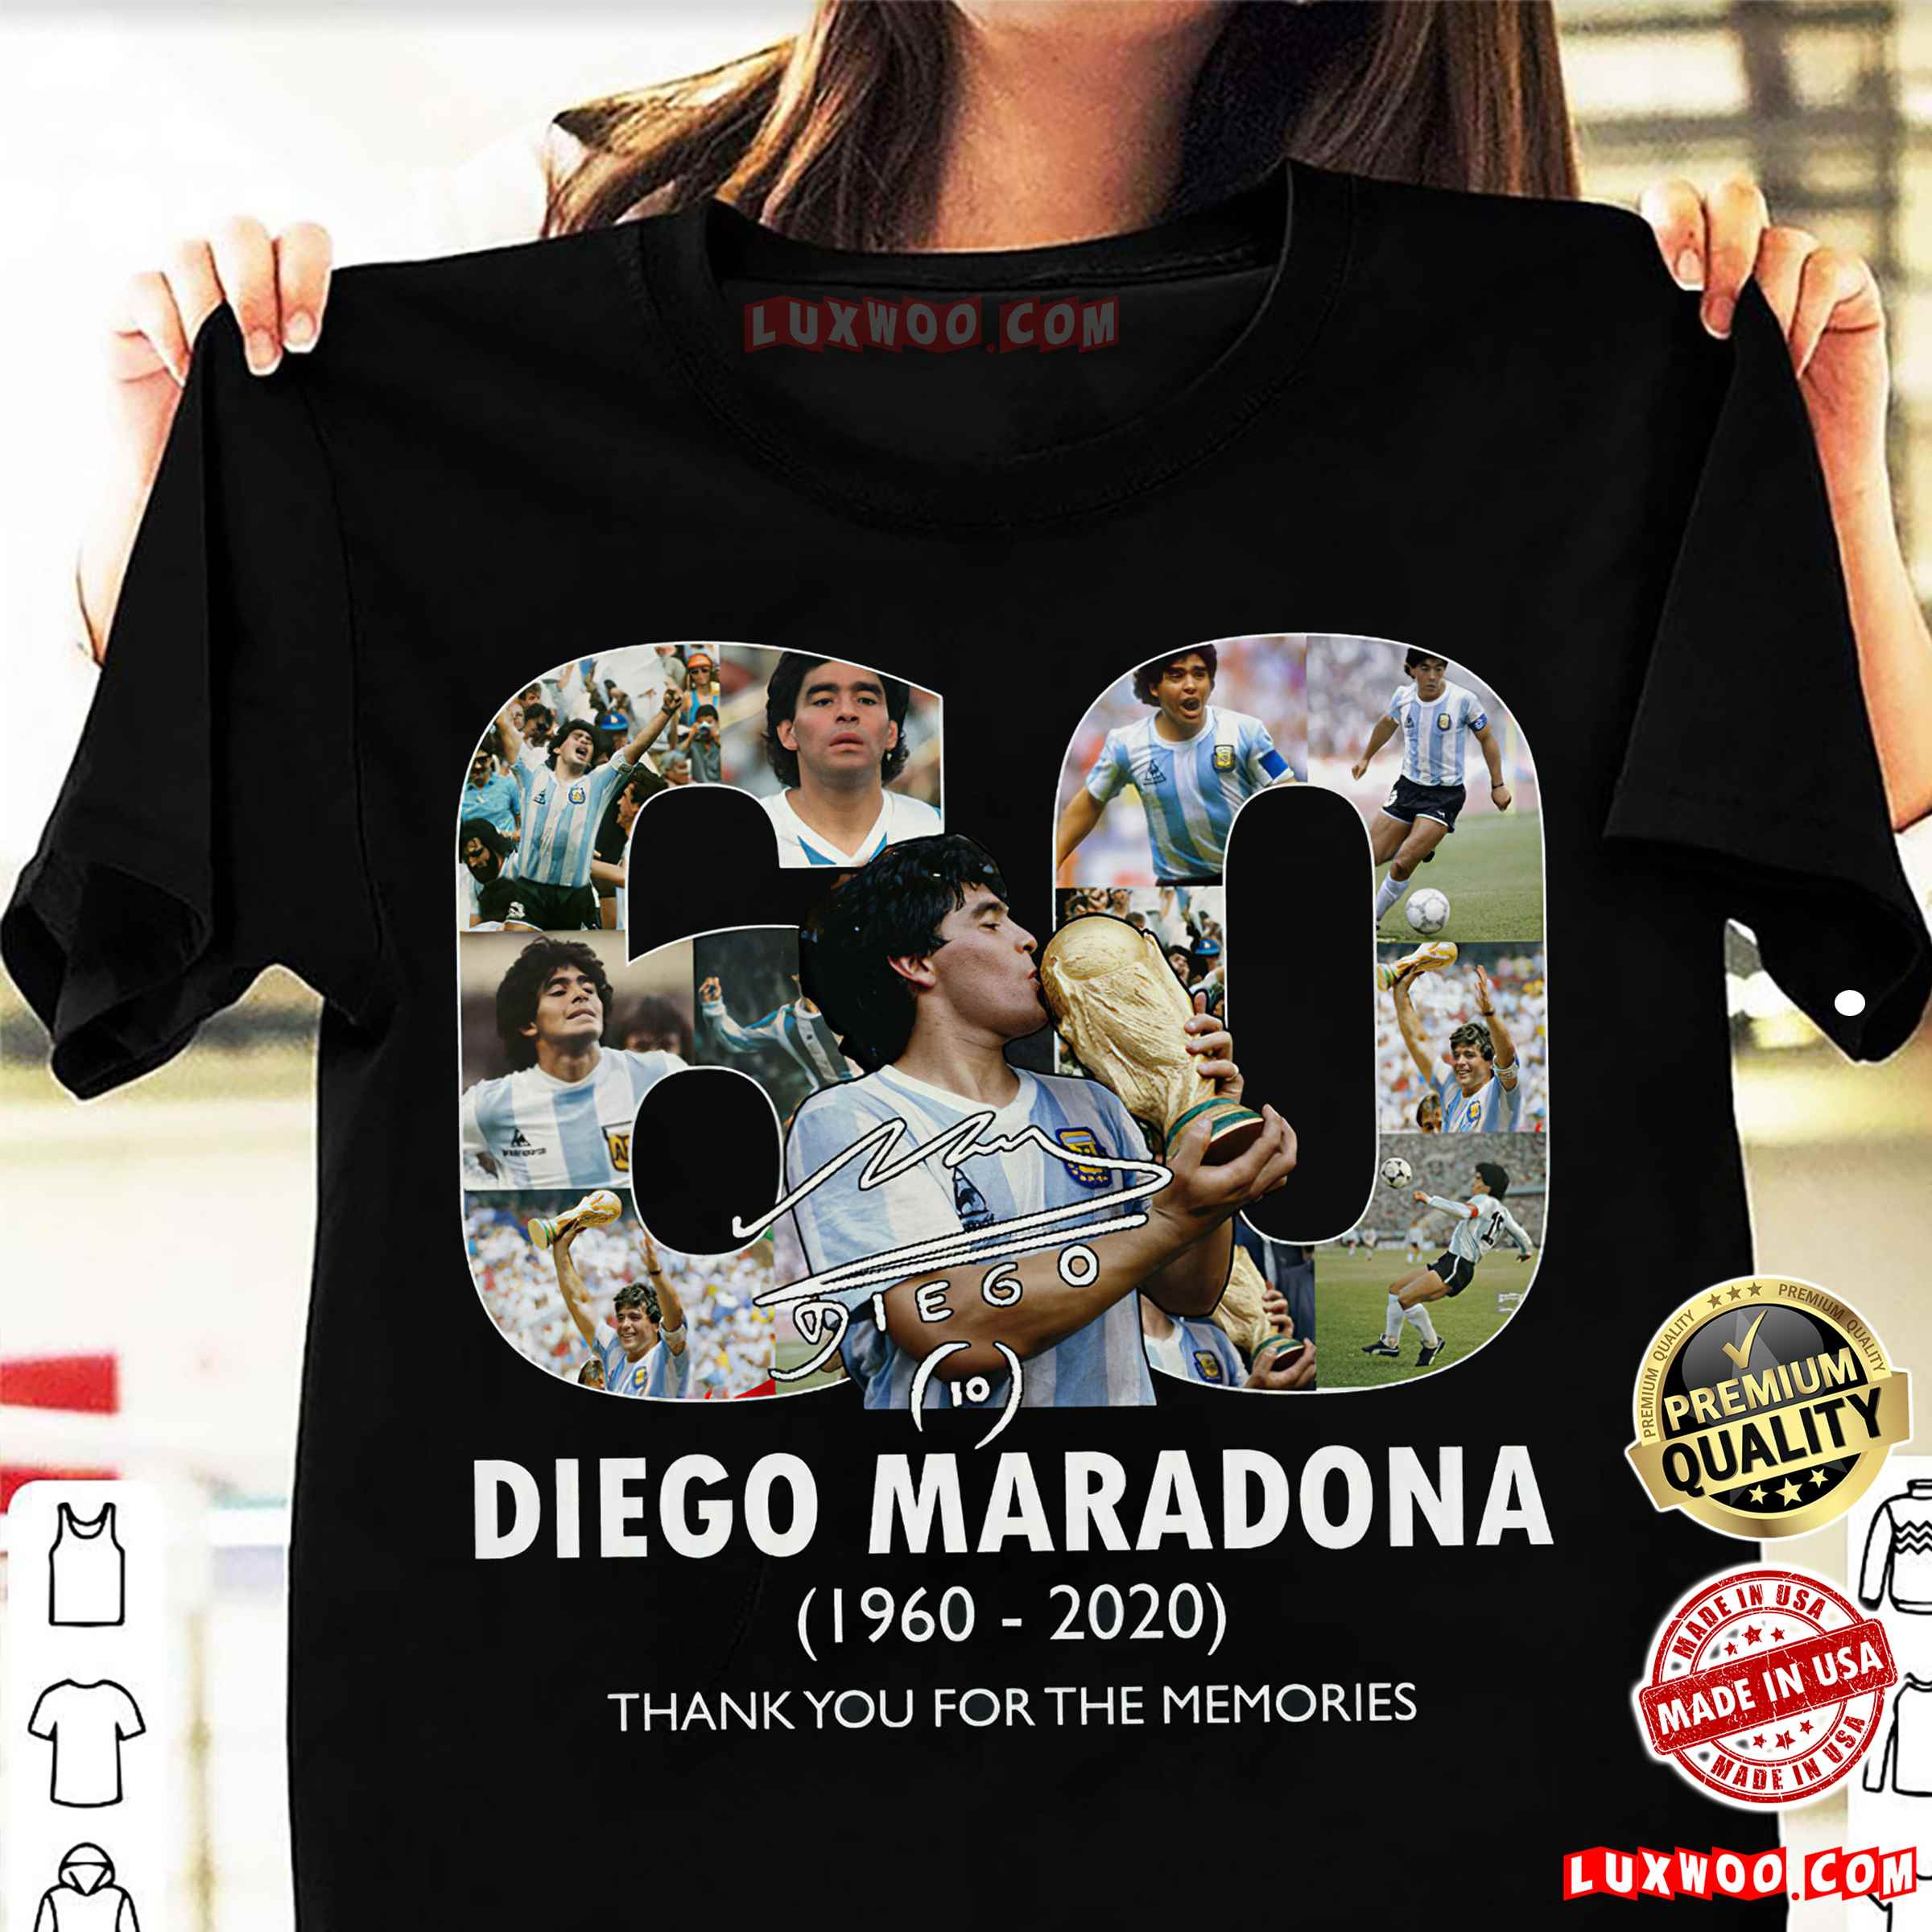 Rip Diego Maradona 1960 - 2020 Thank You For The Memories Shirt